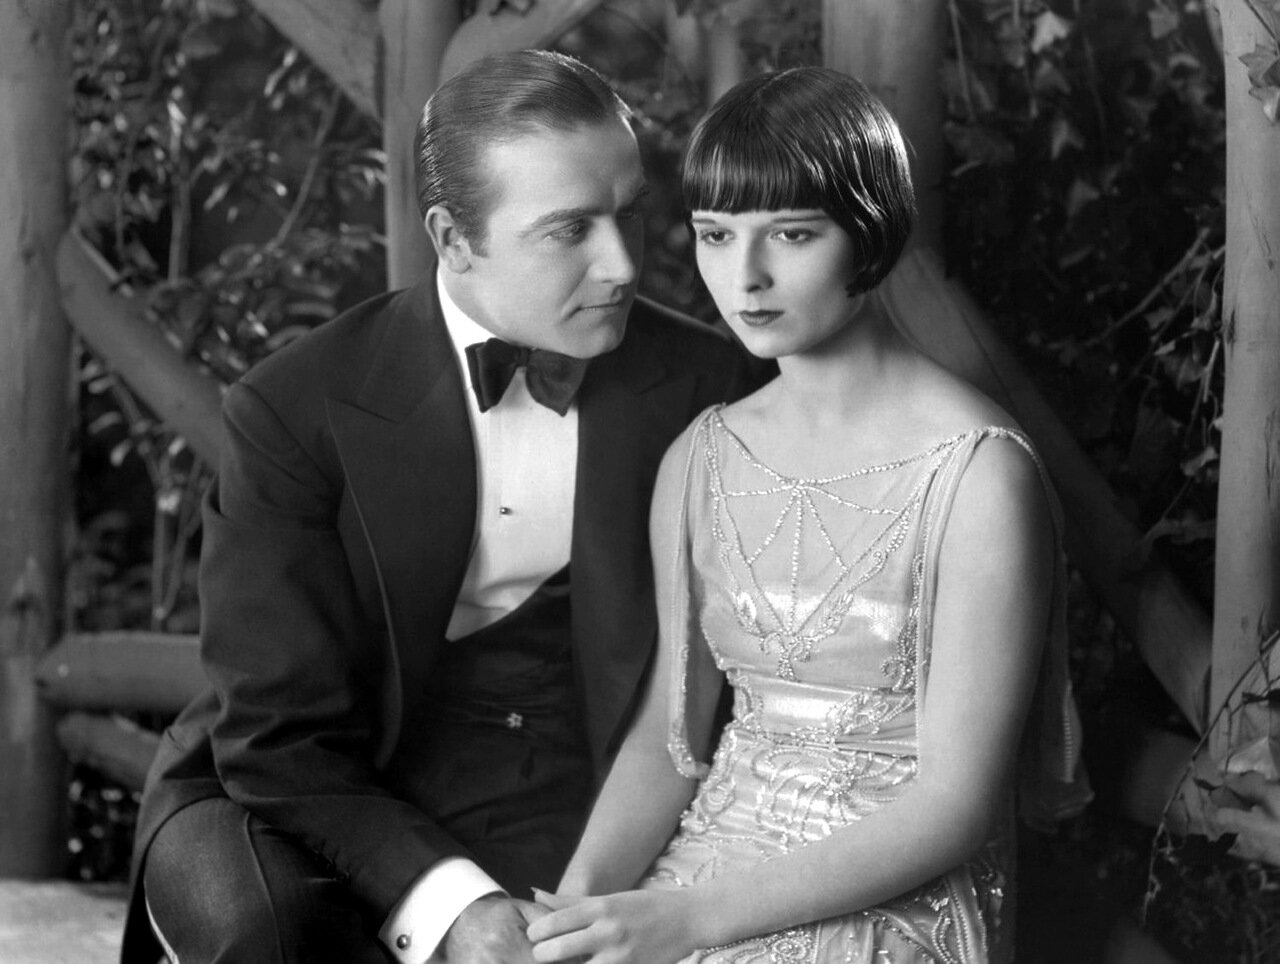 circa 1925: American actress Louise Brooks (1906-1985) shares a romantic arbour with a man in a scene from an unknown film.